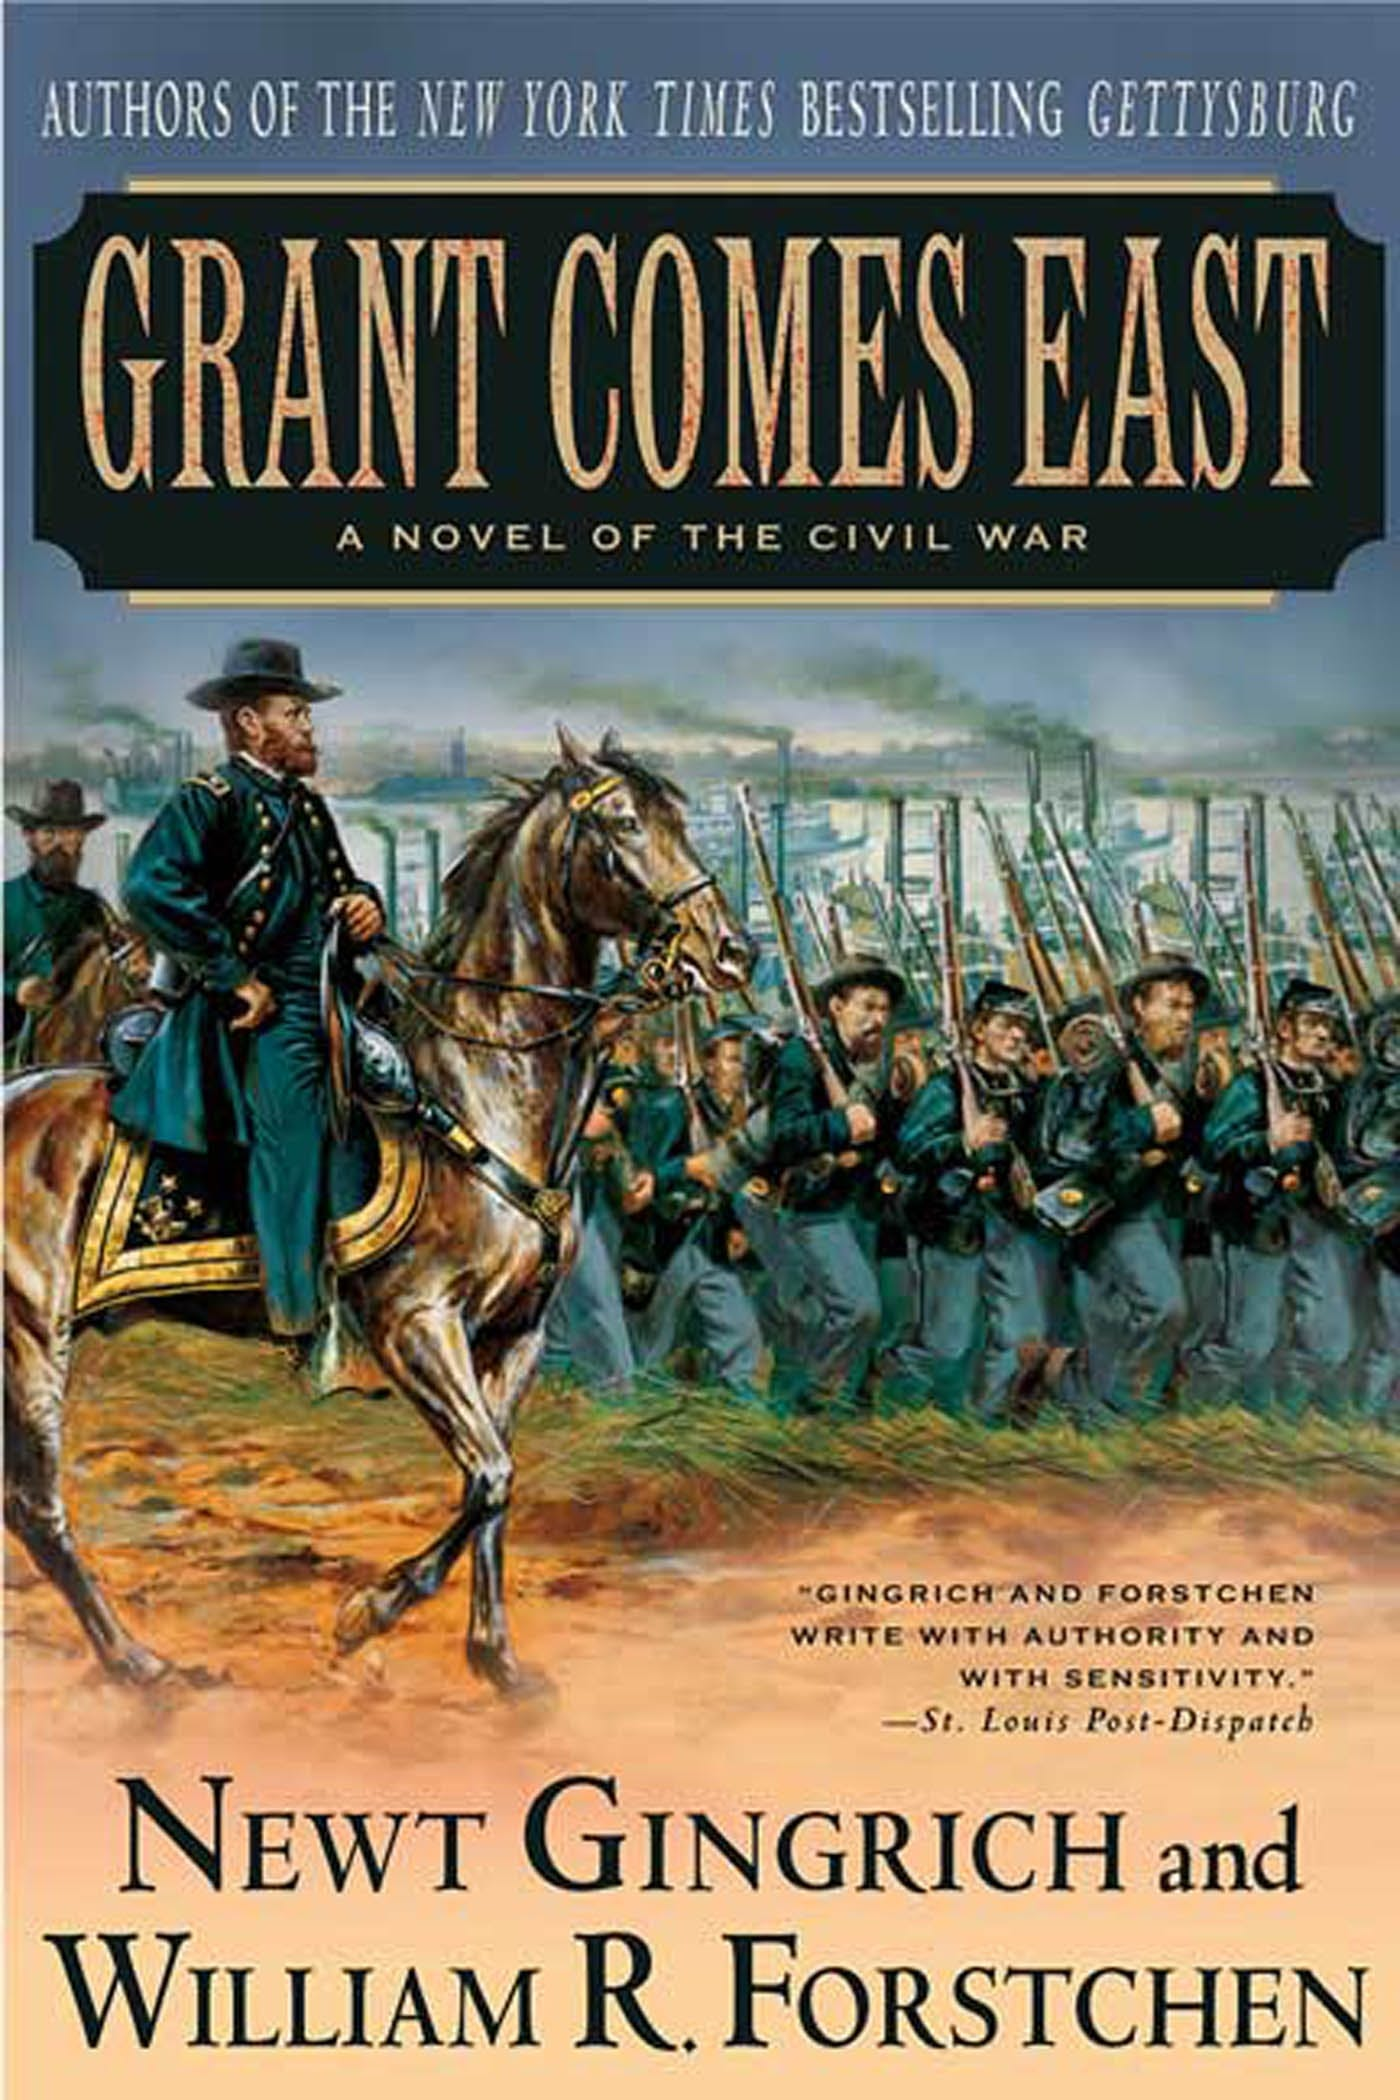 Image of Grant Comes East